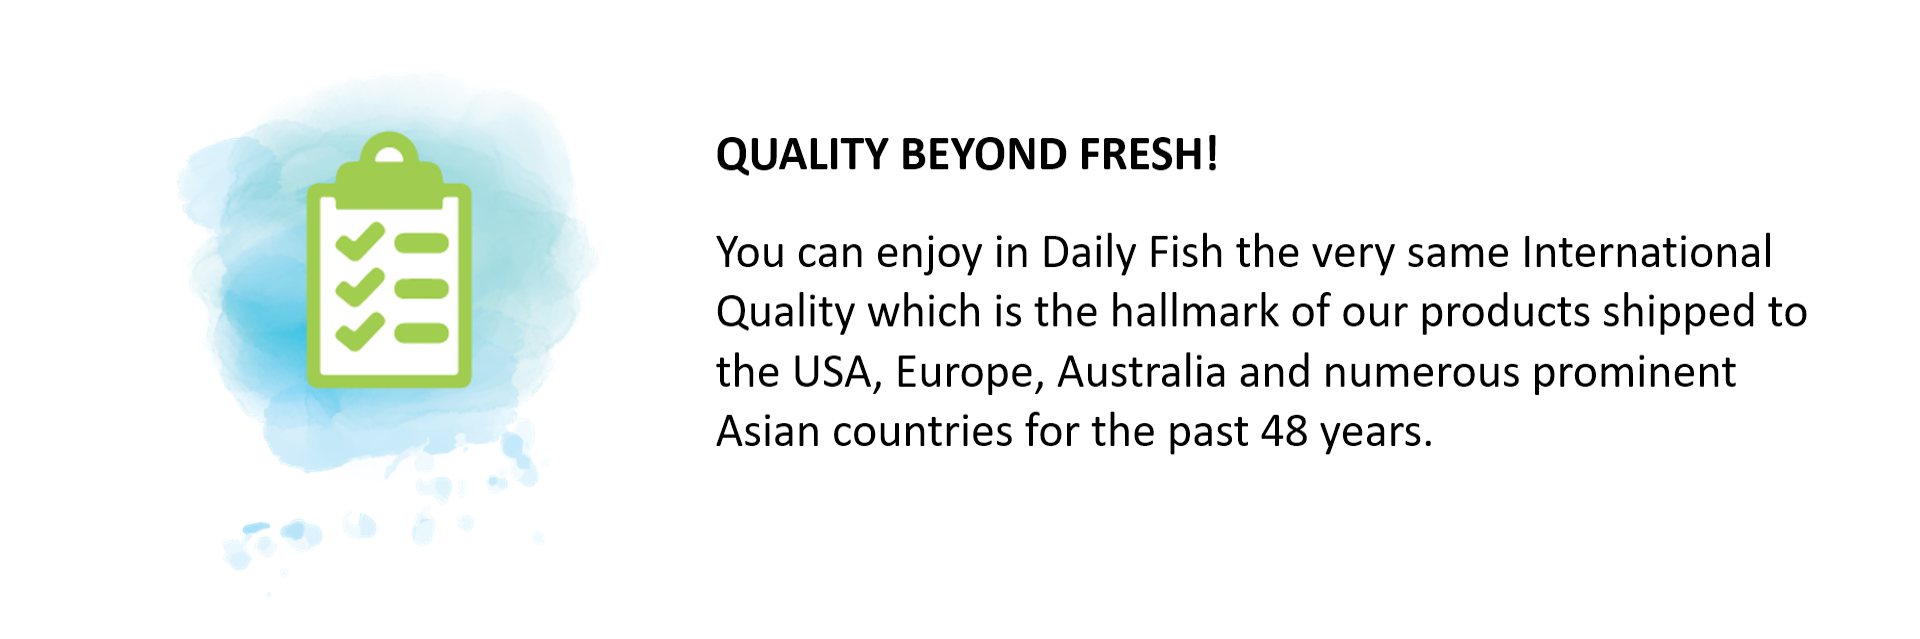 Daily Fish India Think Beyond Fresh_9